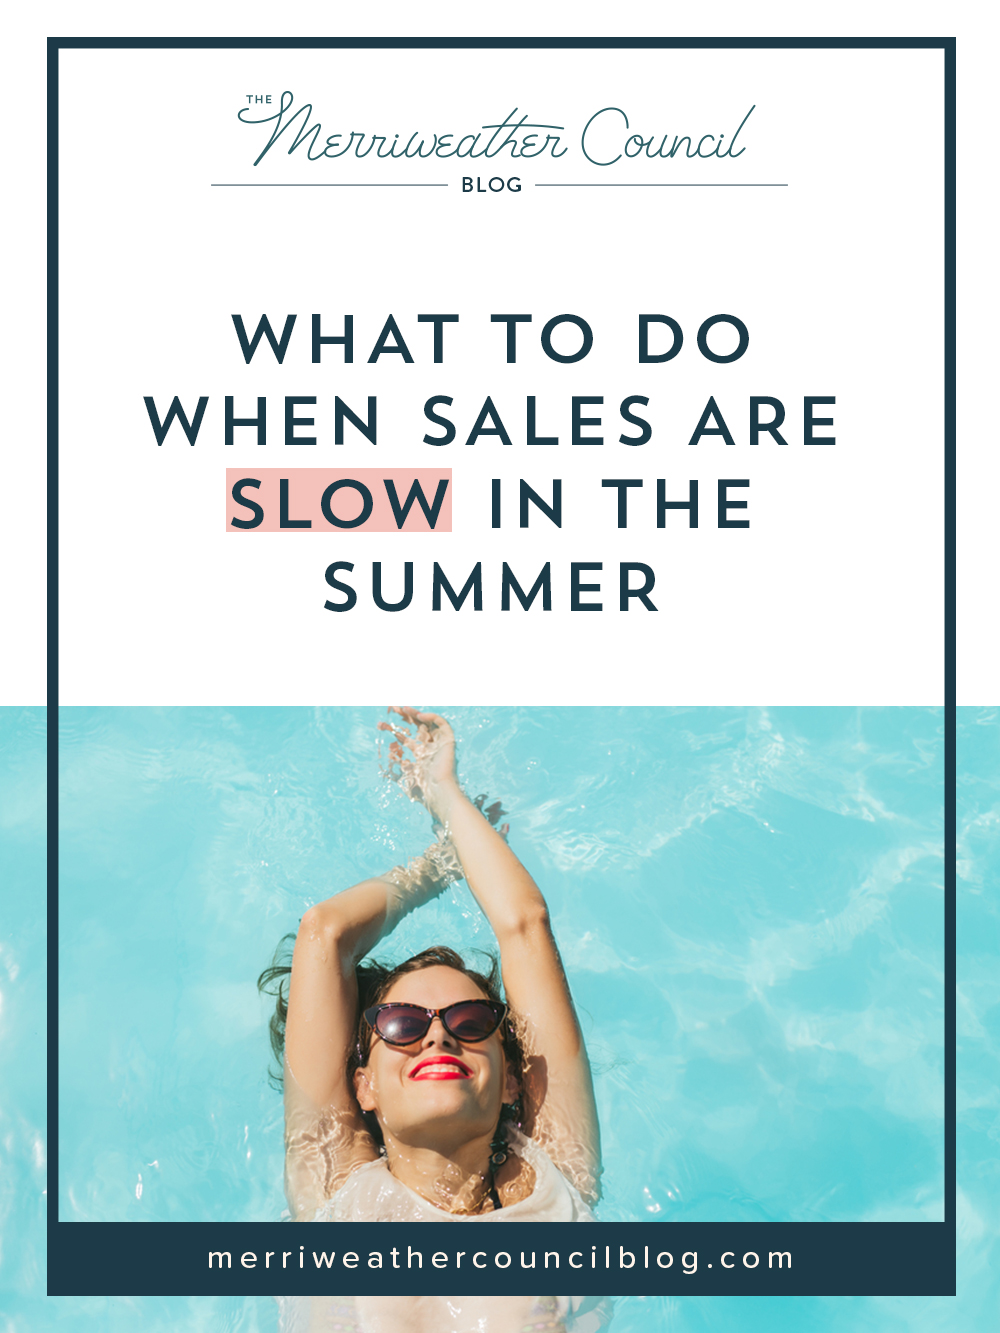 what to do when sales are slow in the summer | the merriweather council blog